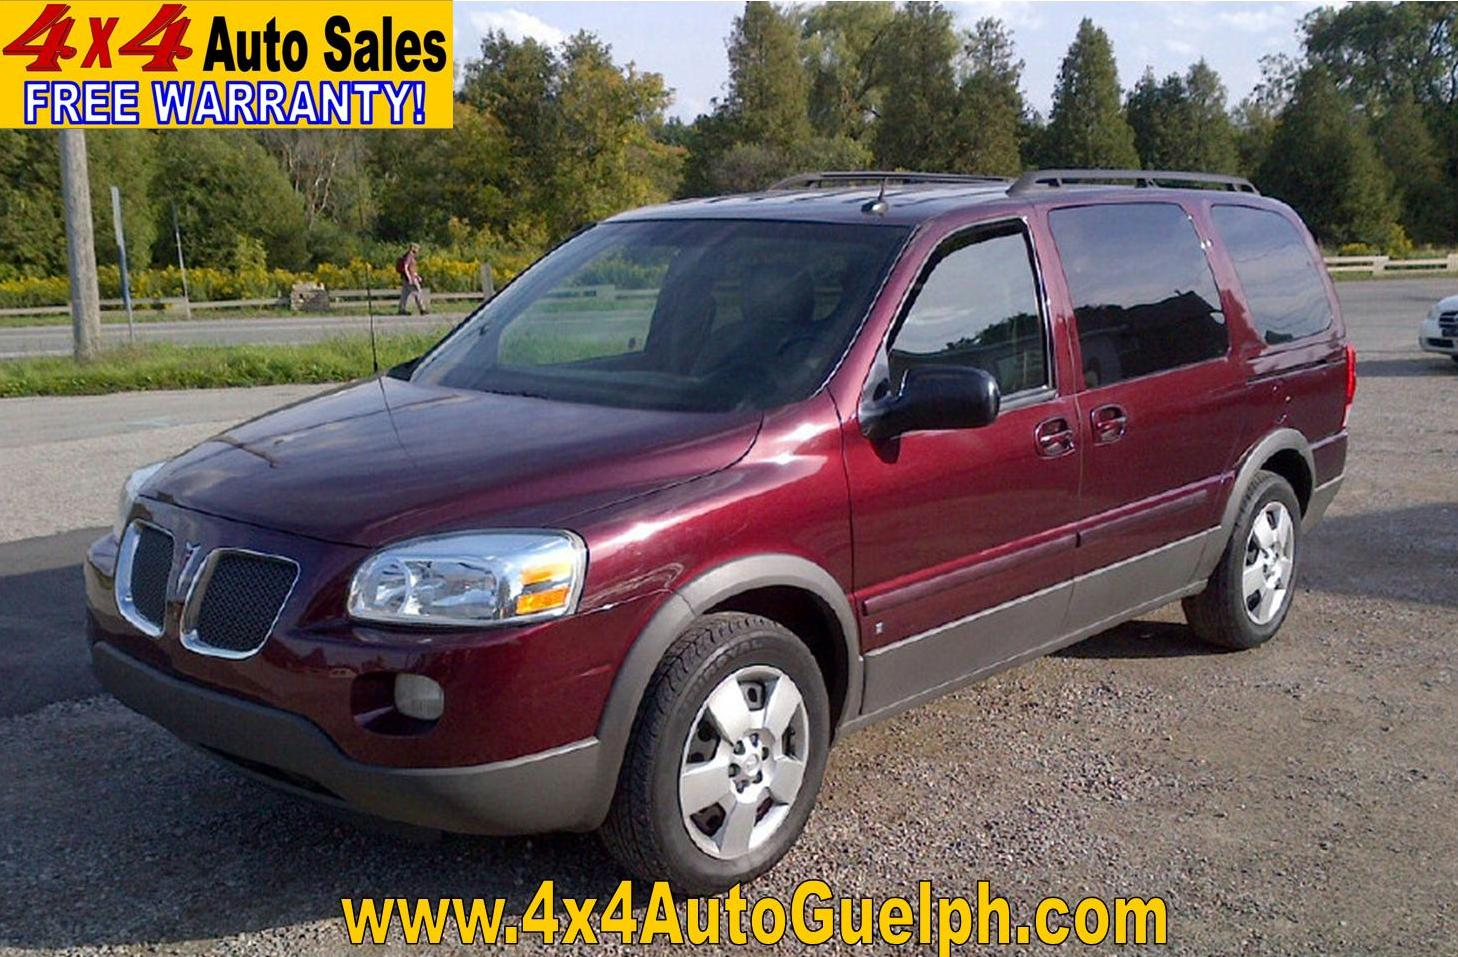 Pontiac Montana SV6 Extended Leather! Mint! Only $5,950 -